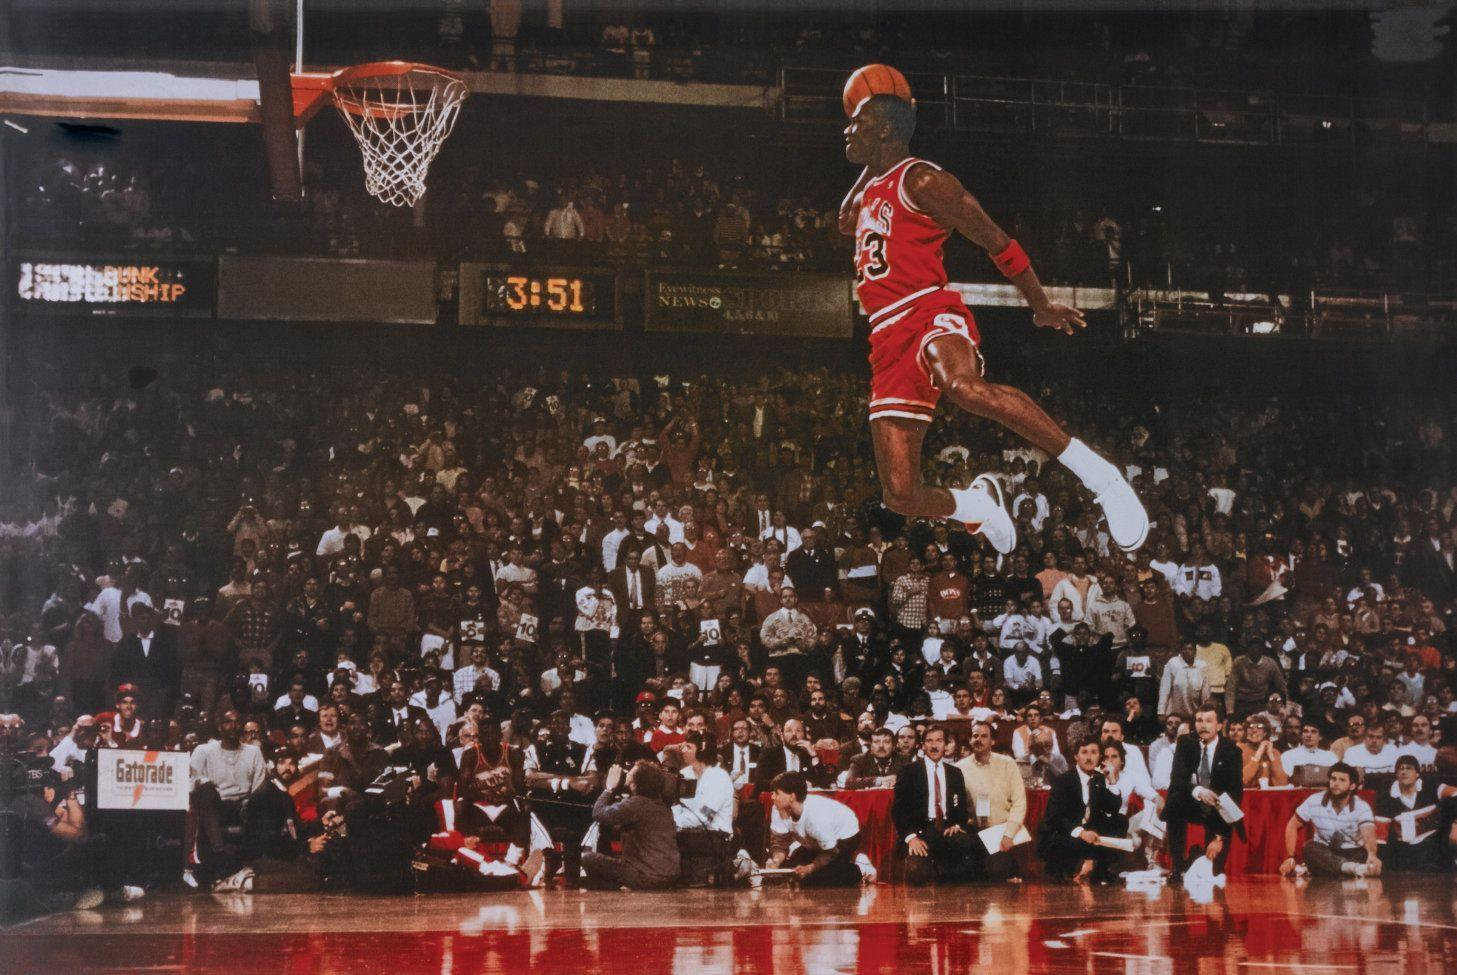 A Different Side Of January Jones n 3565972 as well Michael Jordan Rookie Year likewise Michael Jordan Dunk Wallpaper additionally S0a8q99 Cesta Jordan Aire together with Better Basketball Player Lebron James Vs Michael Jordan. on oscar robertson basketball player dunking it